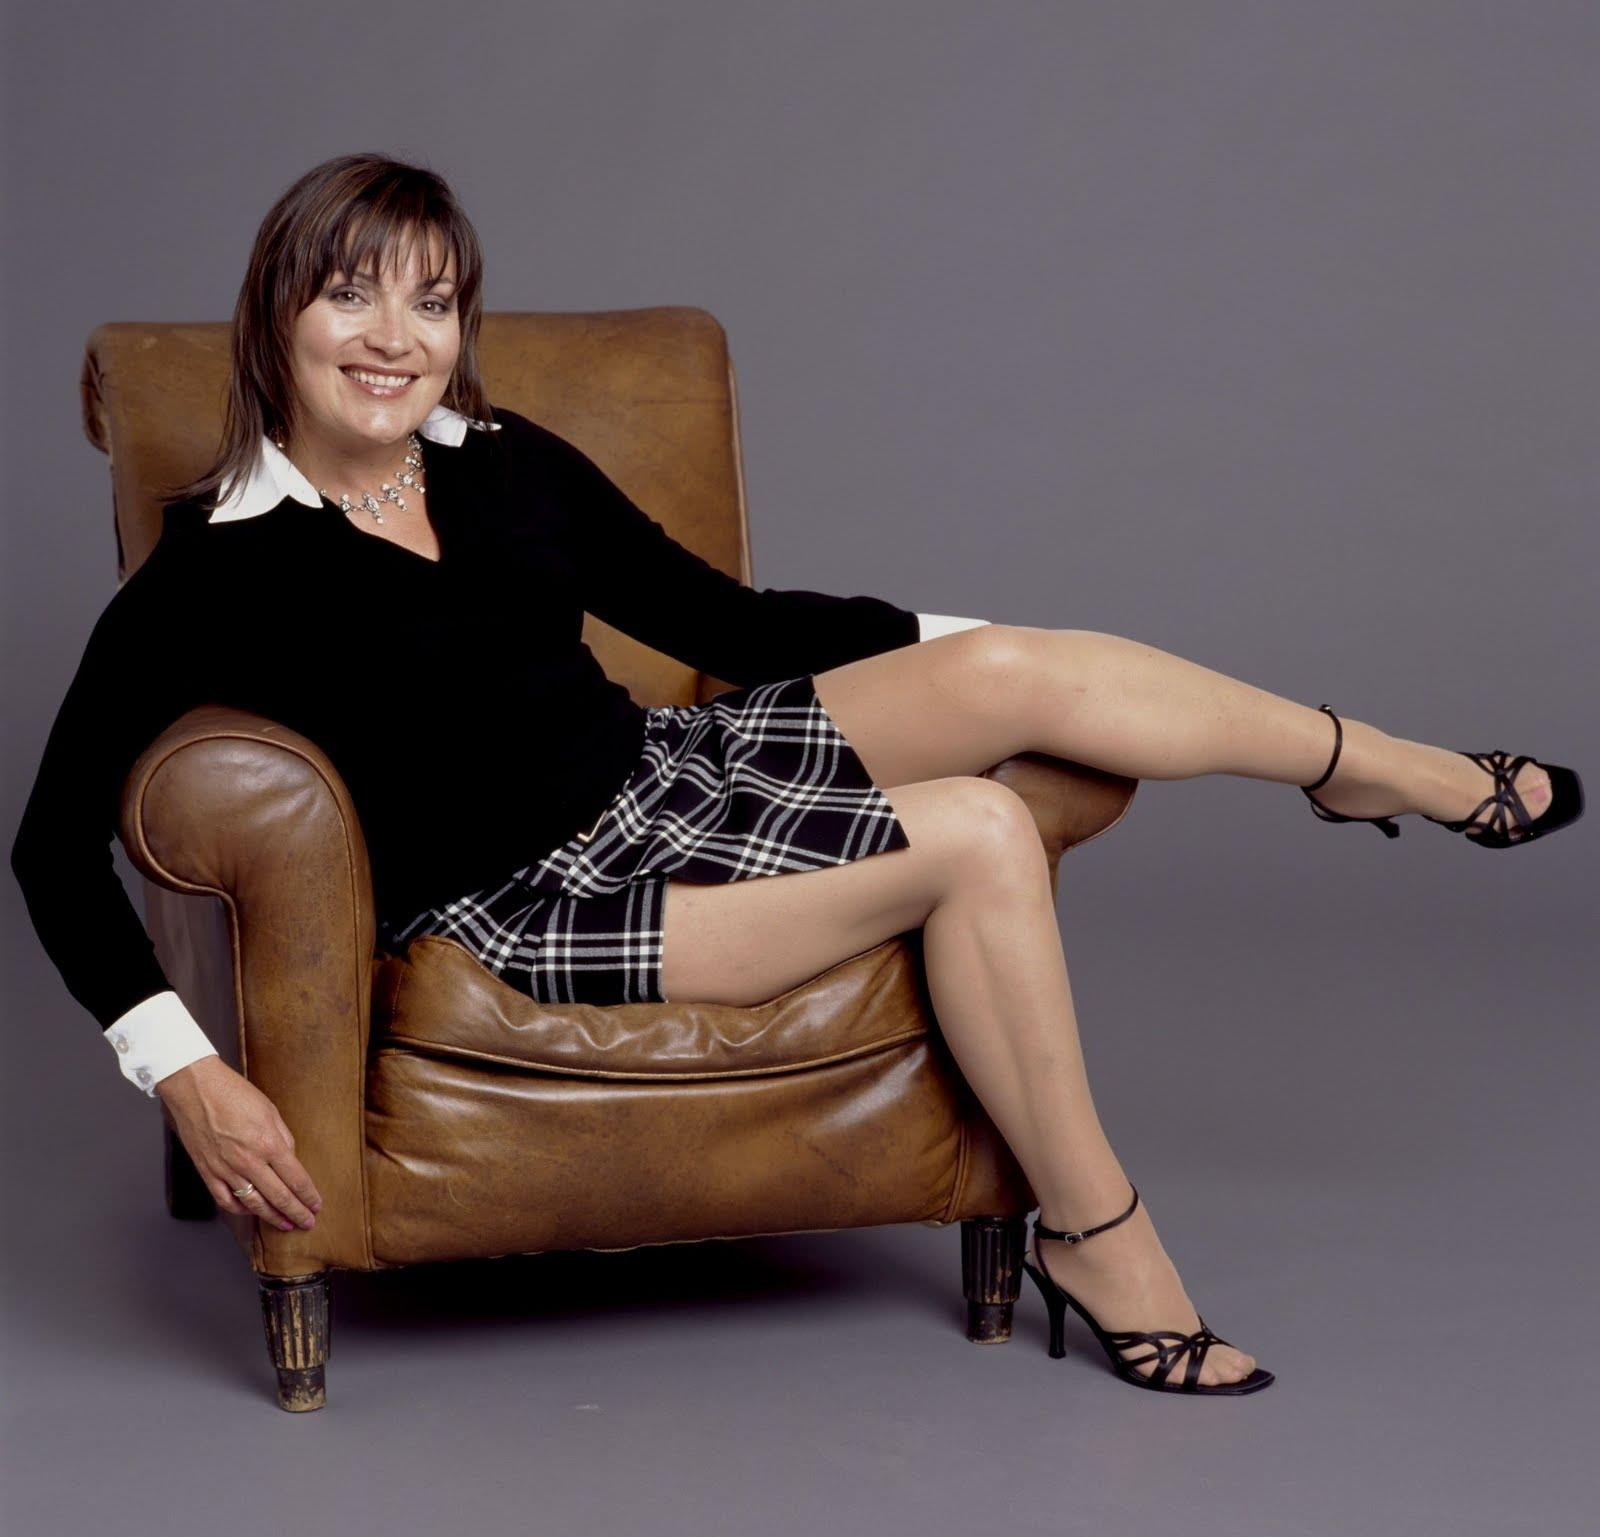 lorraine kelly s rating 6 08 10